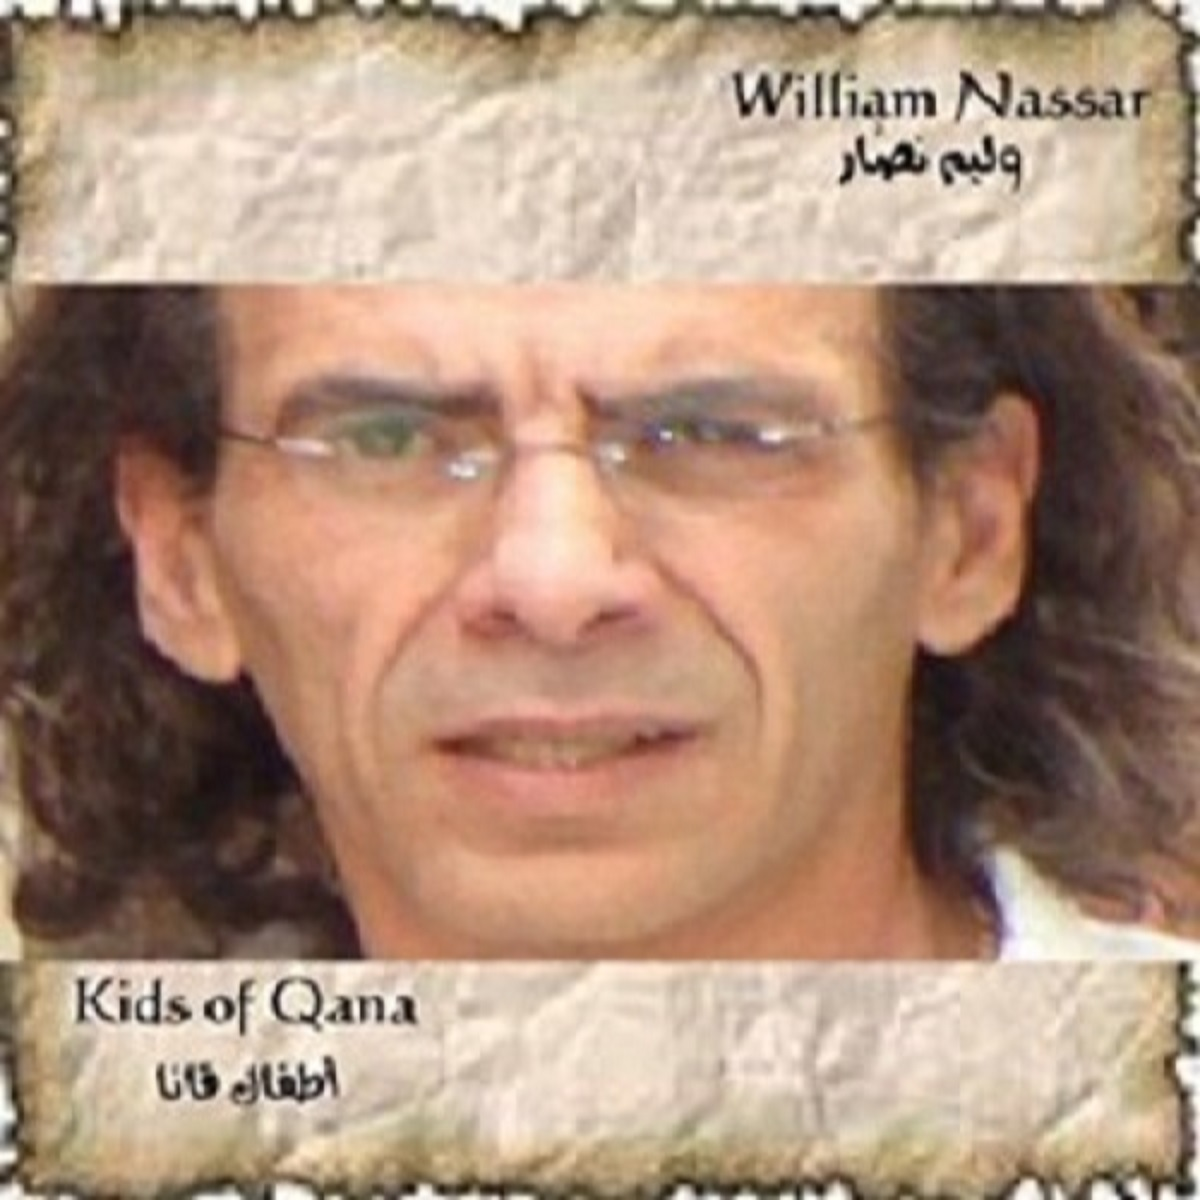 William Nassar